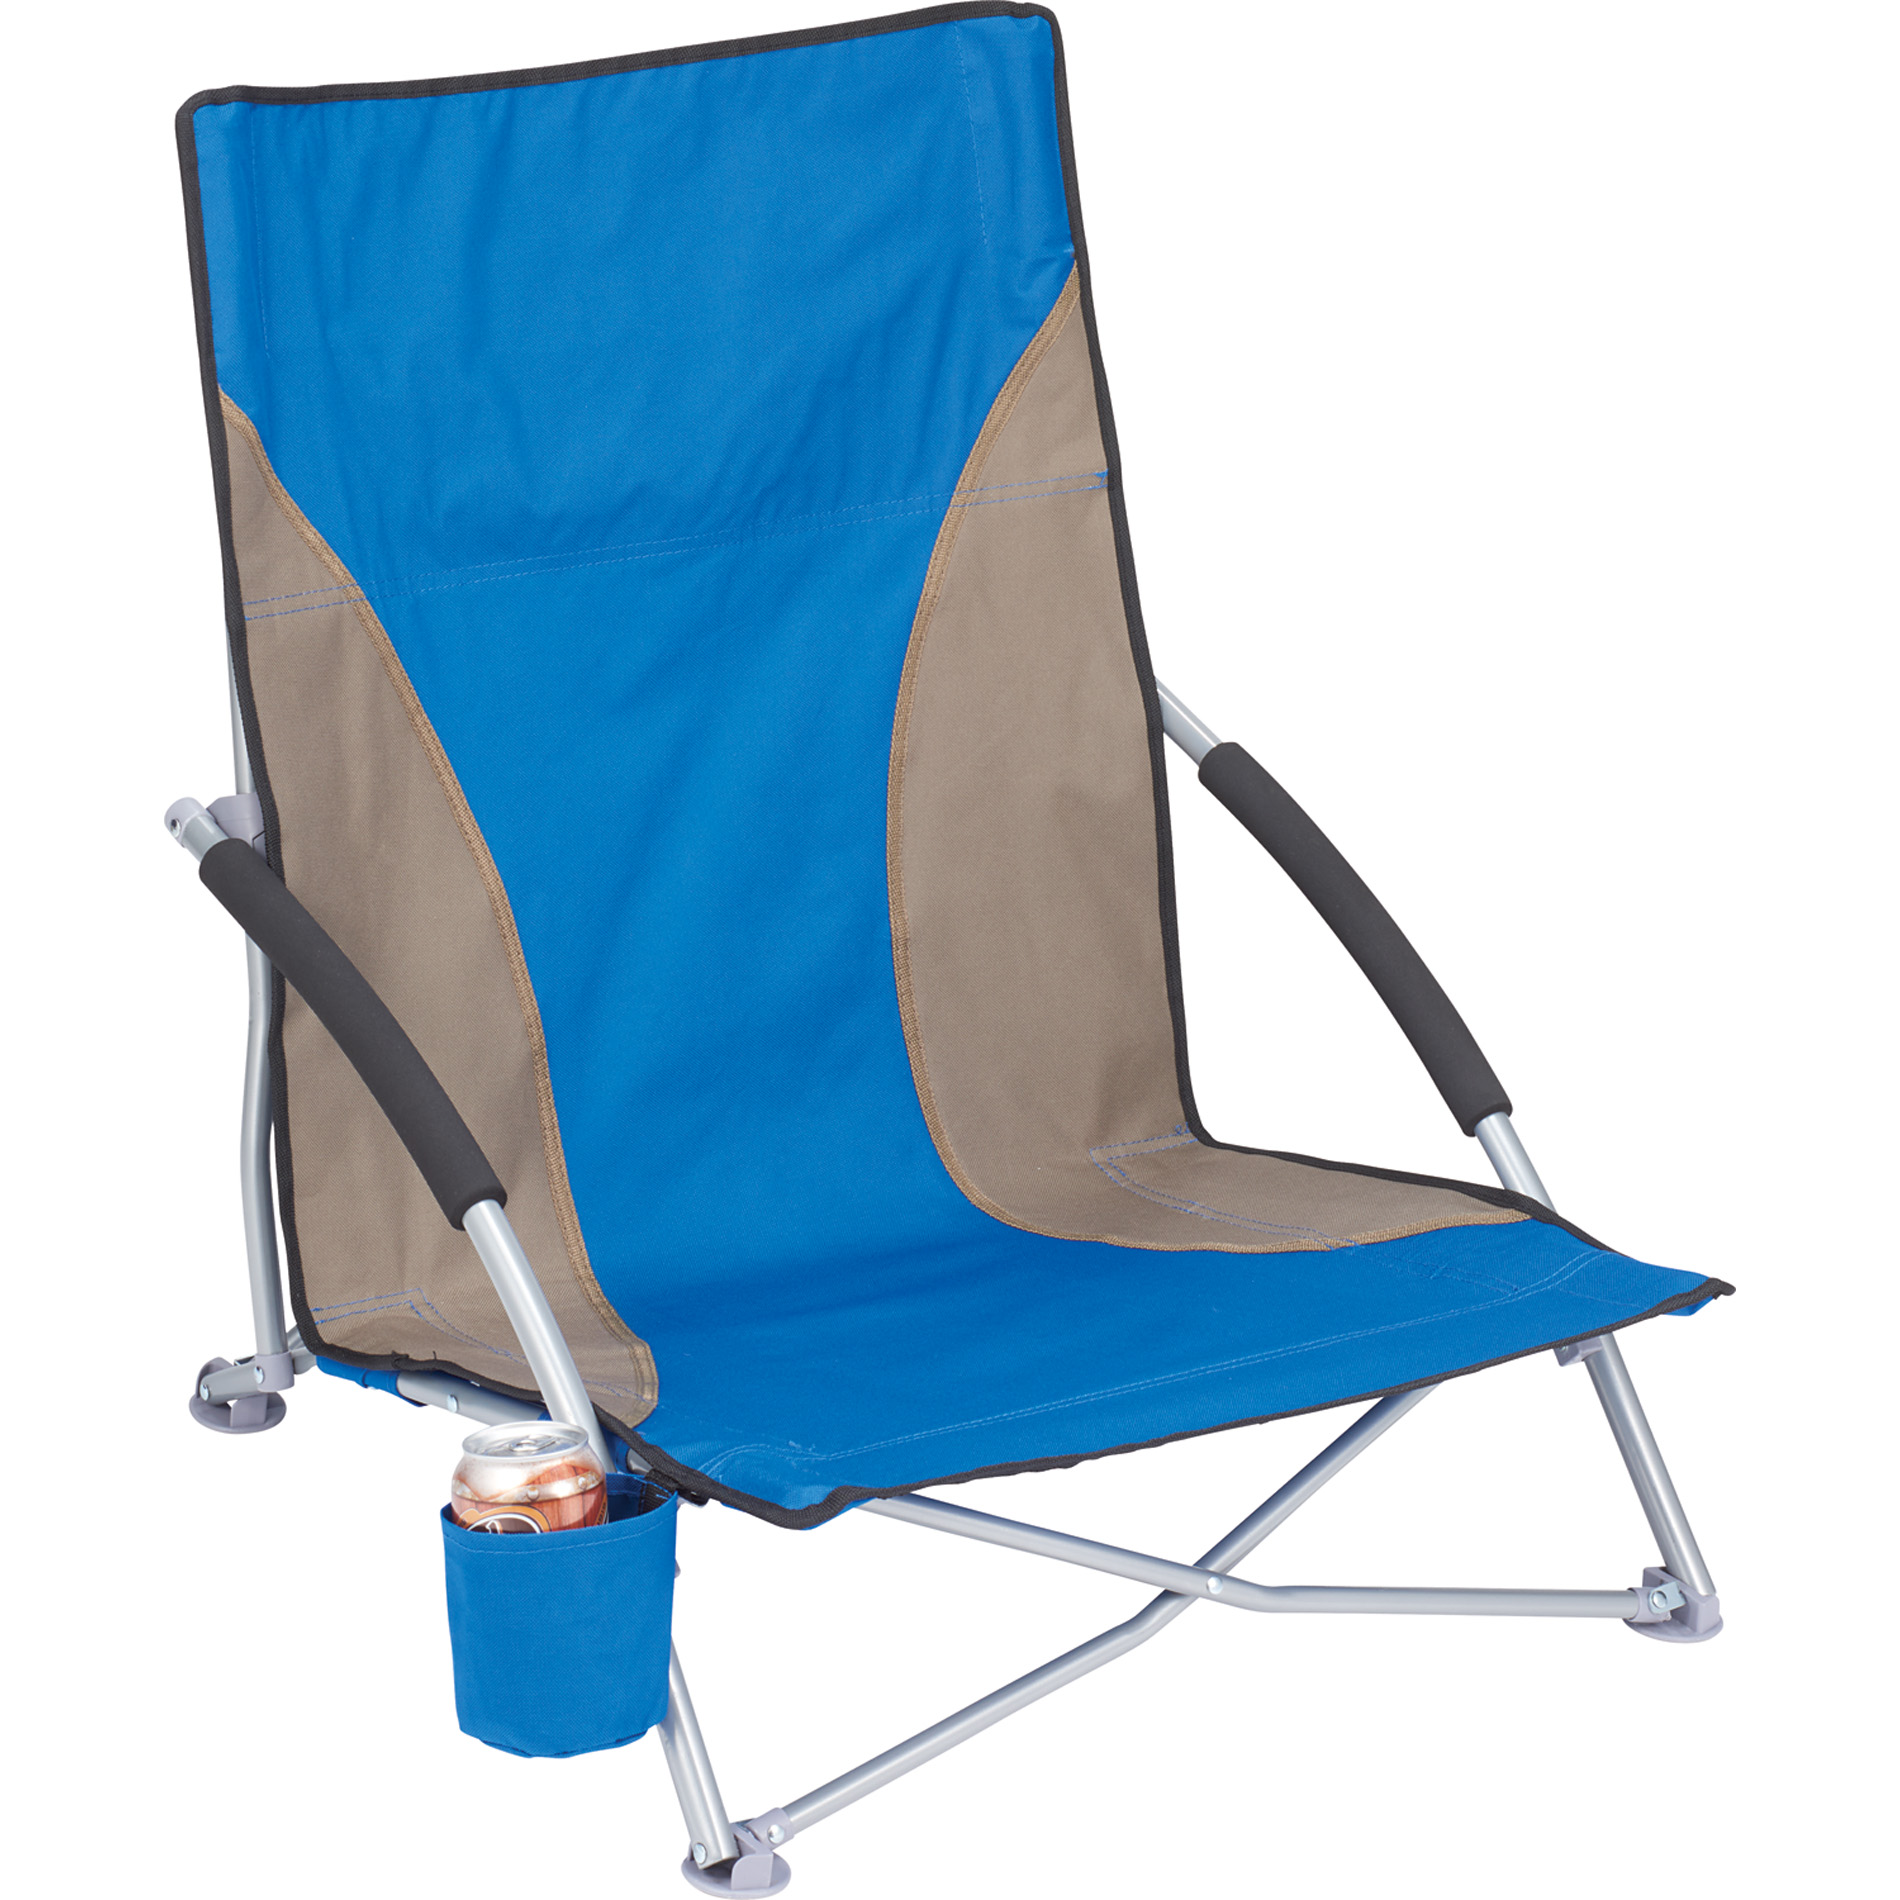 Beach Sling Chair Summeressentials Low Sling Beach Chair Captiv8 Promotions